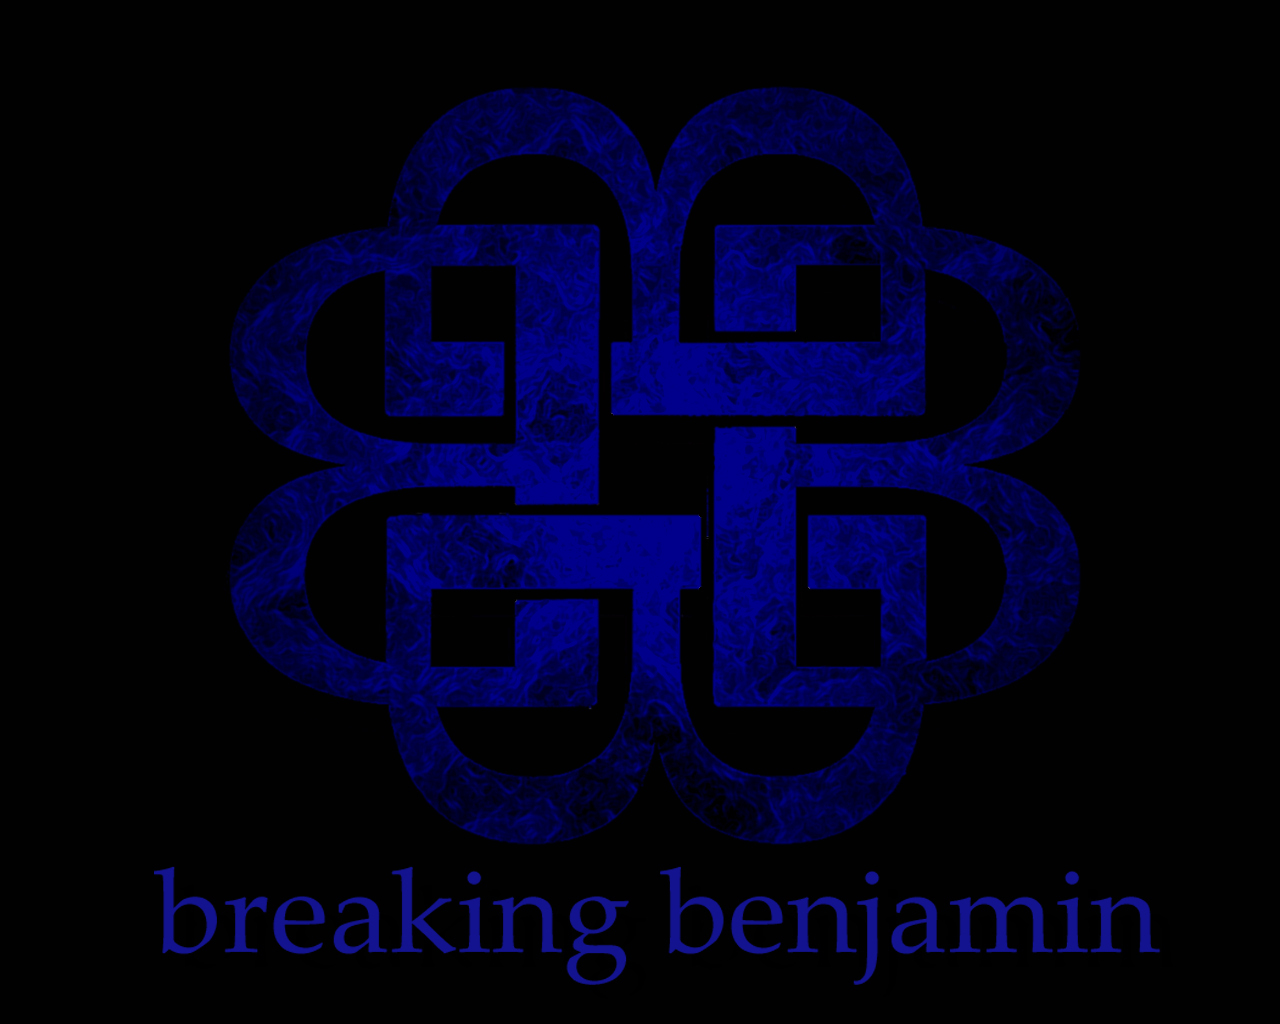 Breaking Benjamin images breaking benjamin logo HD wallpaper and 1280x1024